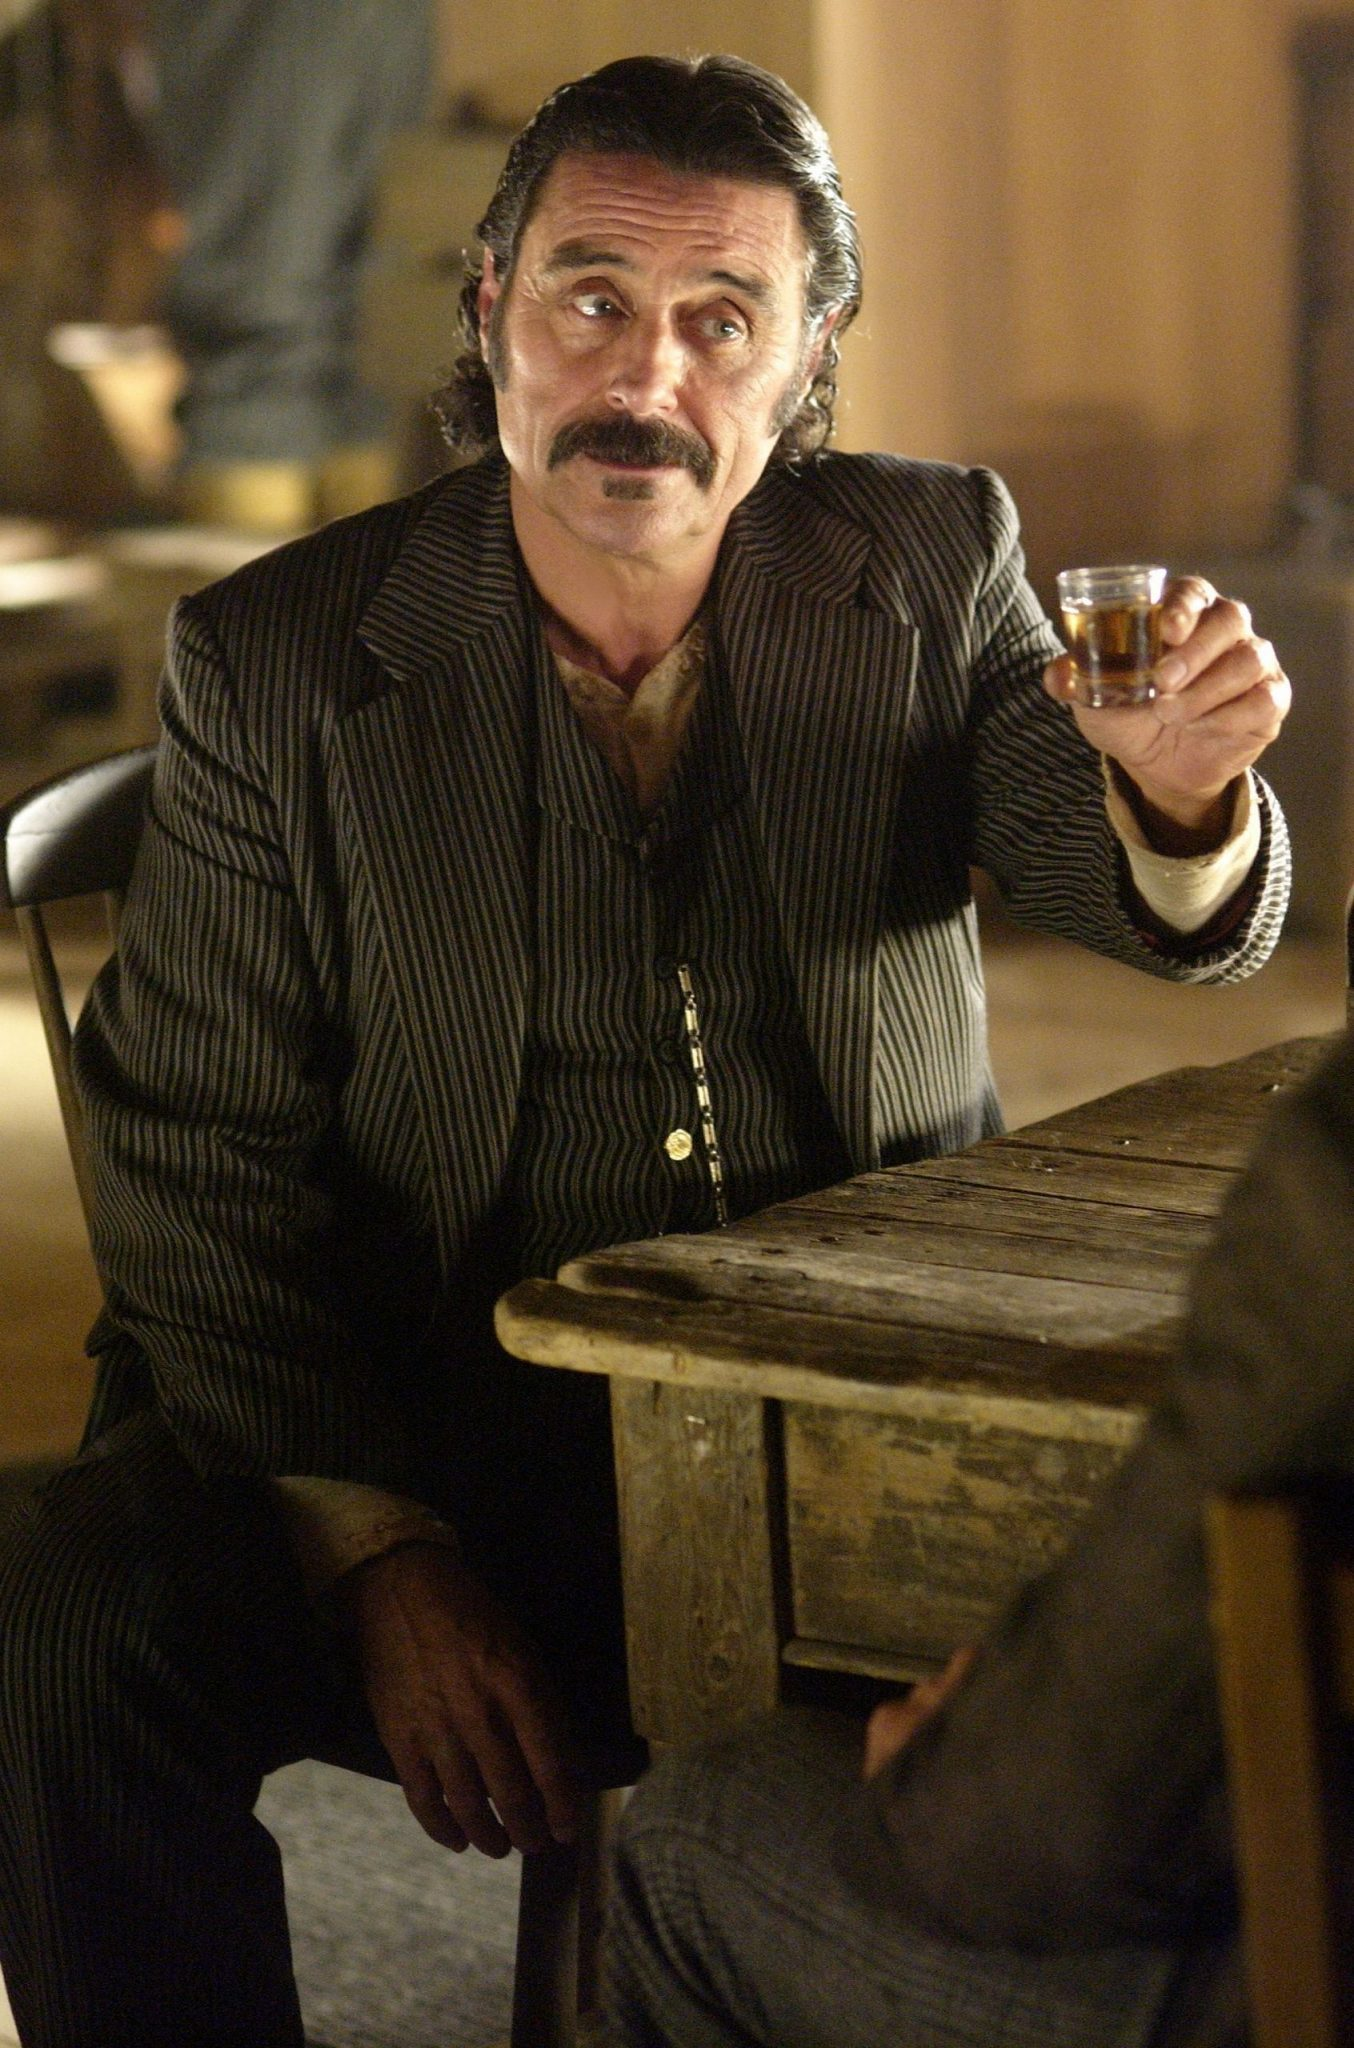 Al-Swearengen-deadwood-20807784-1692-2560